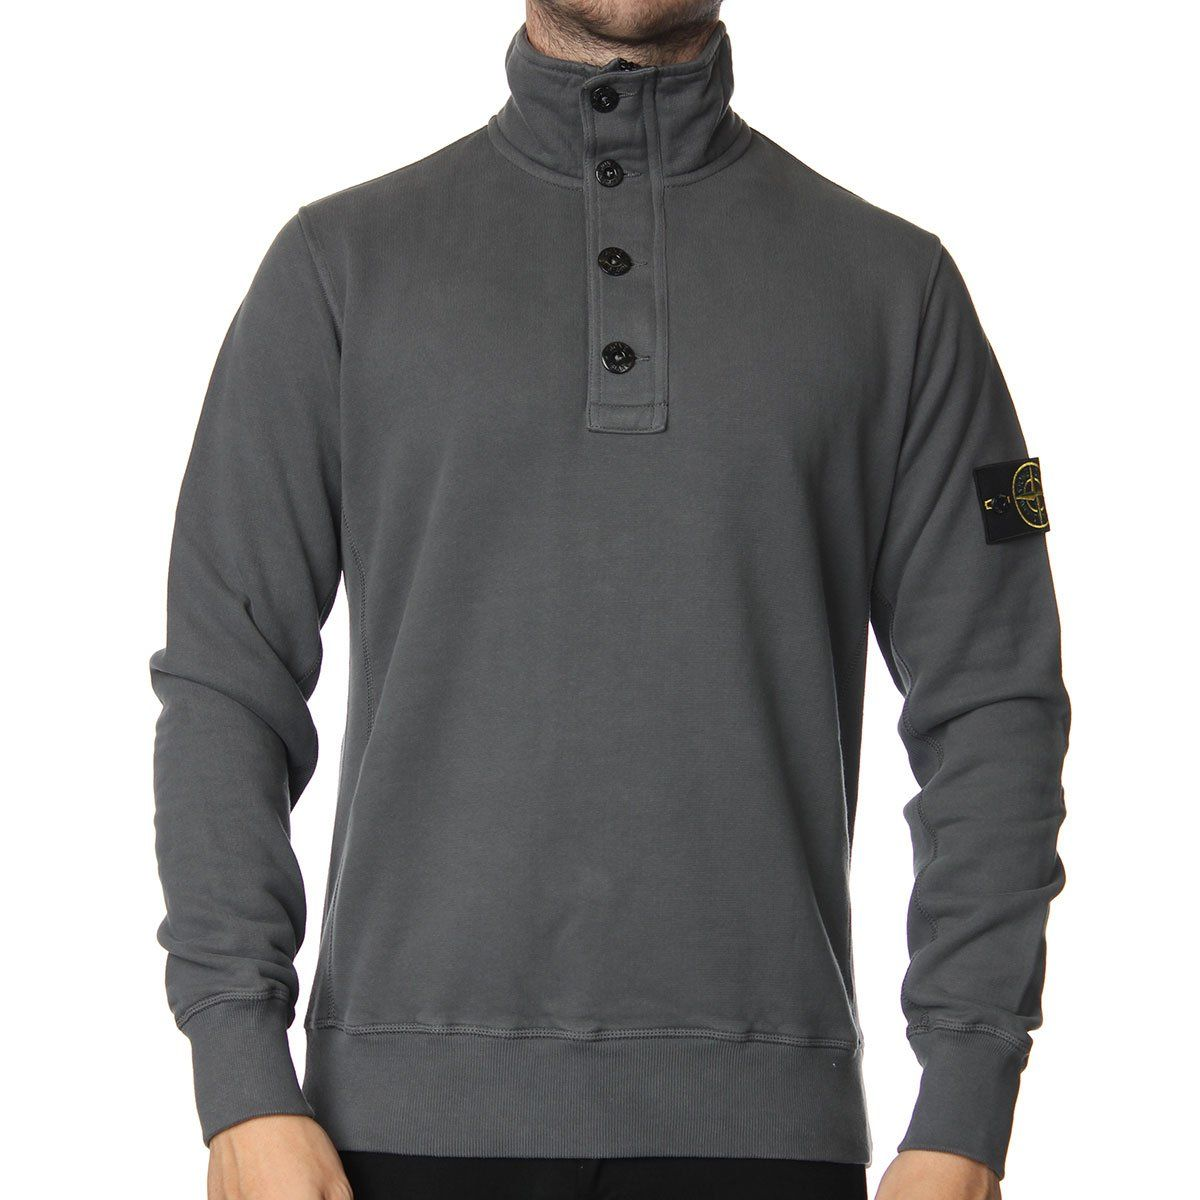 4458b3a90481 Stone Island 1 4 Zip Sweater. Shop now at www.themenswearsite.com ...